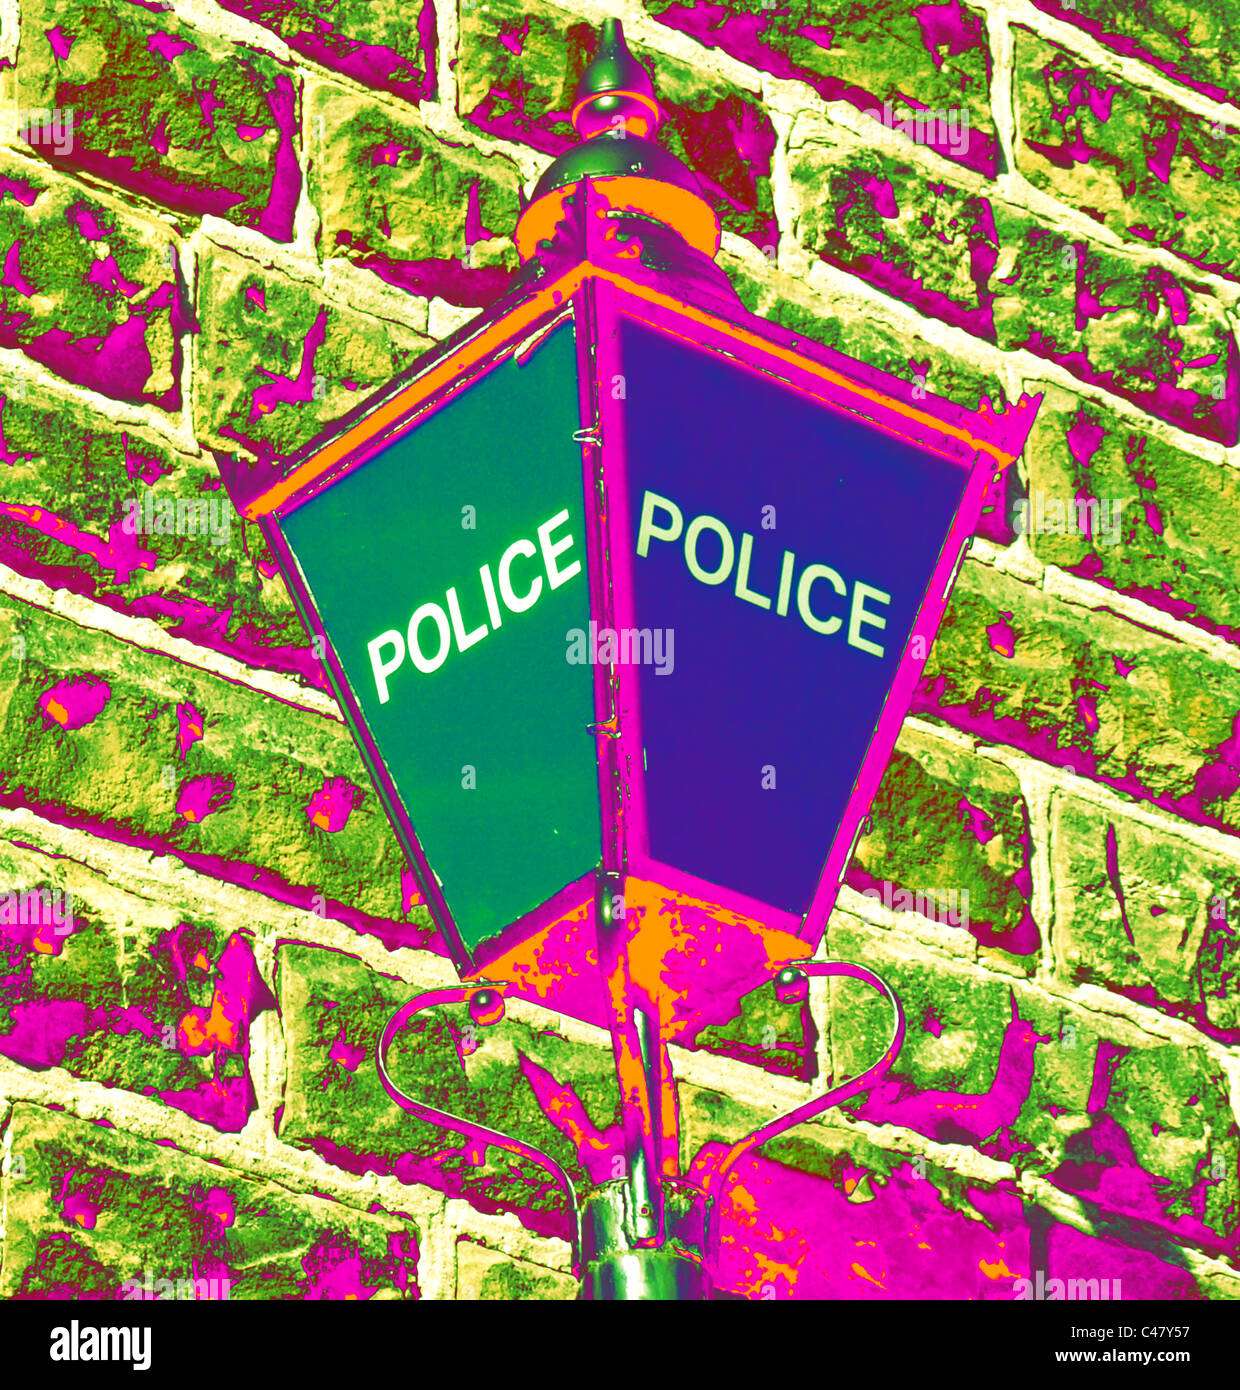 Psychedelic Police - Stock Image